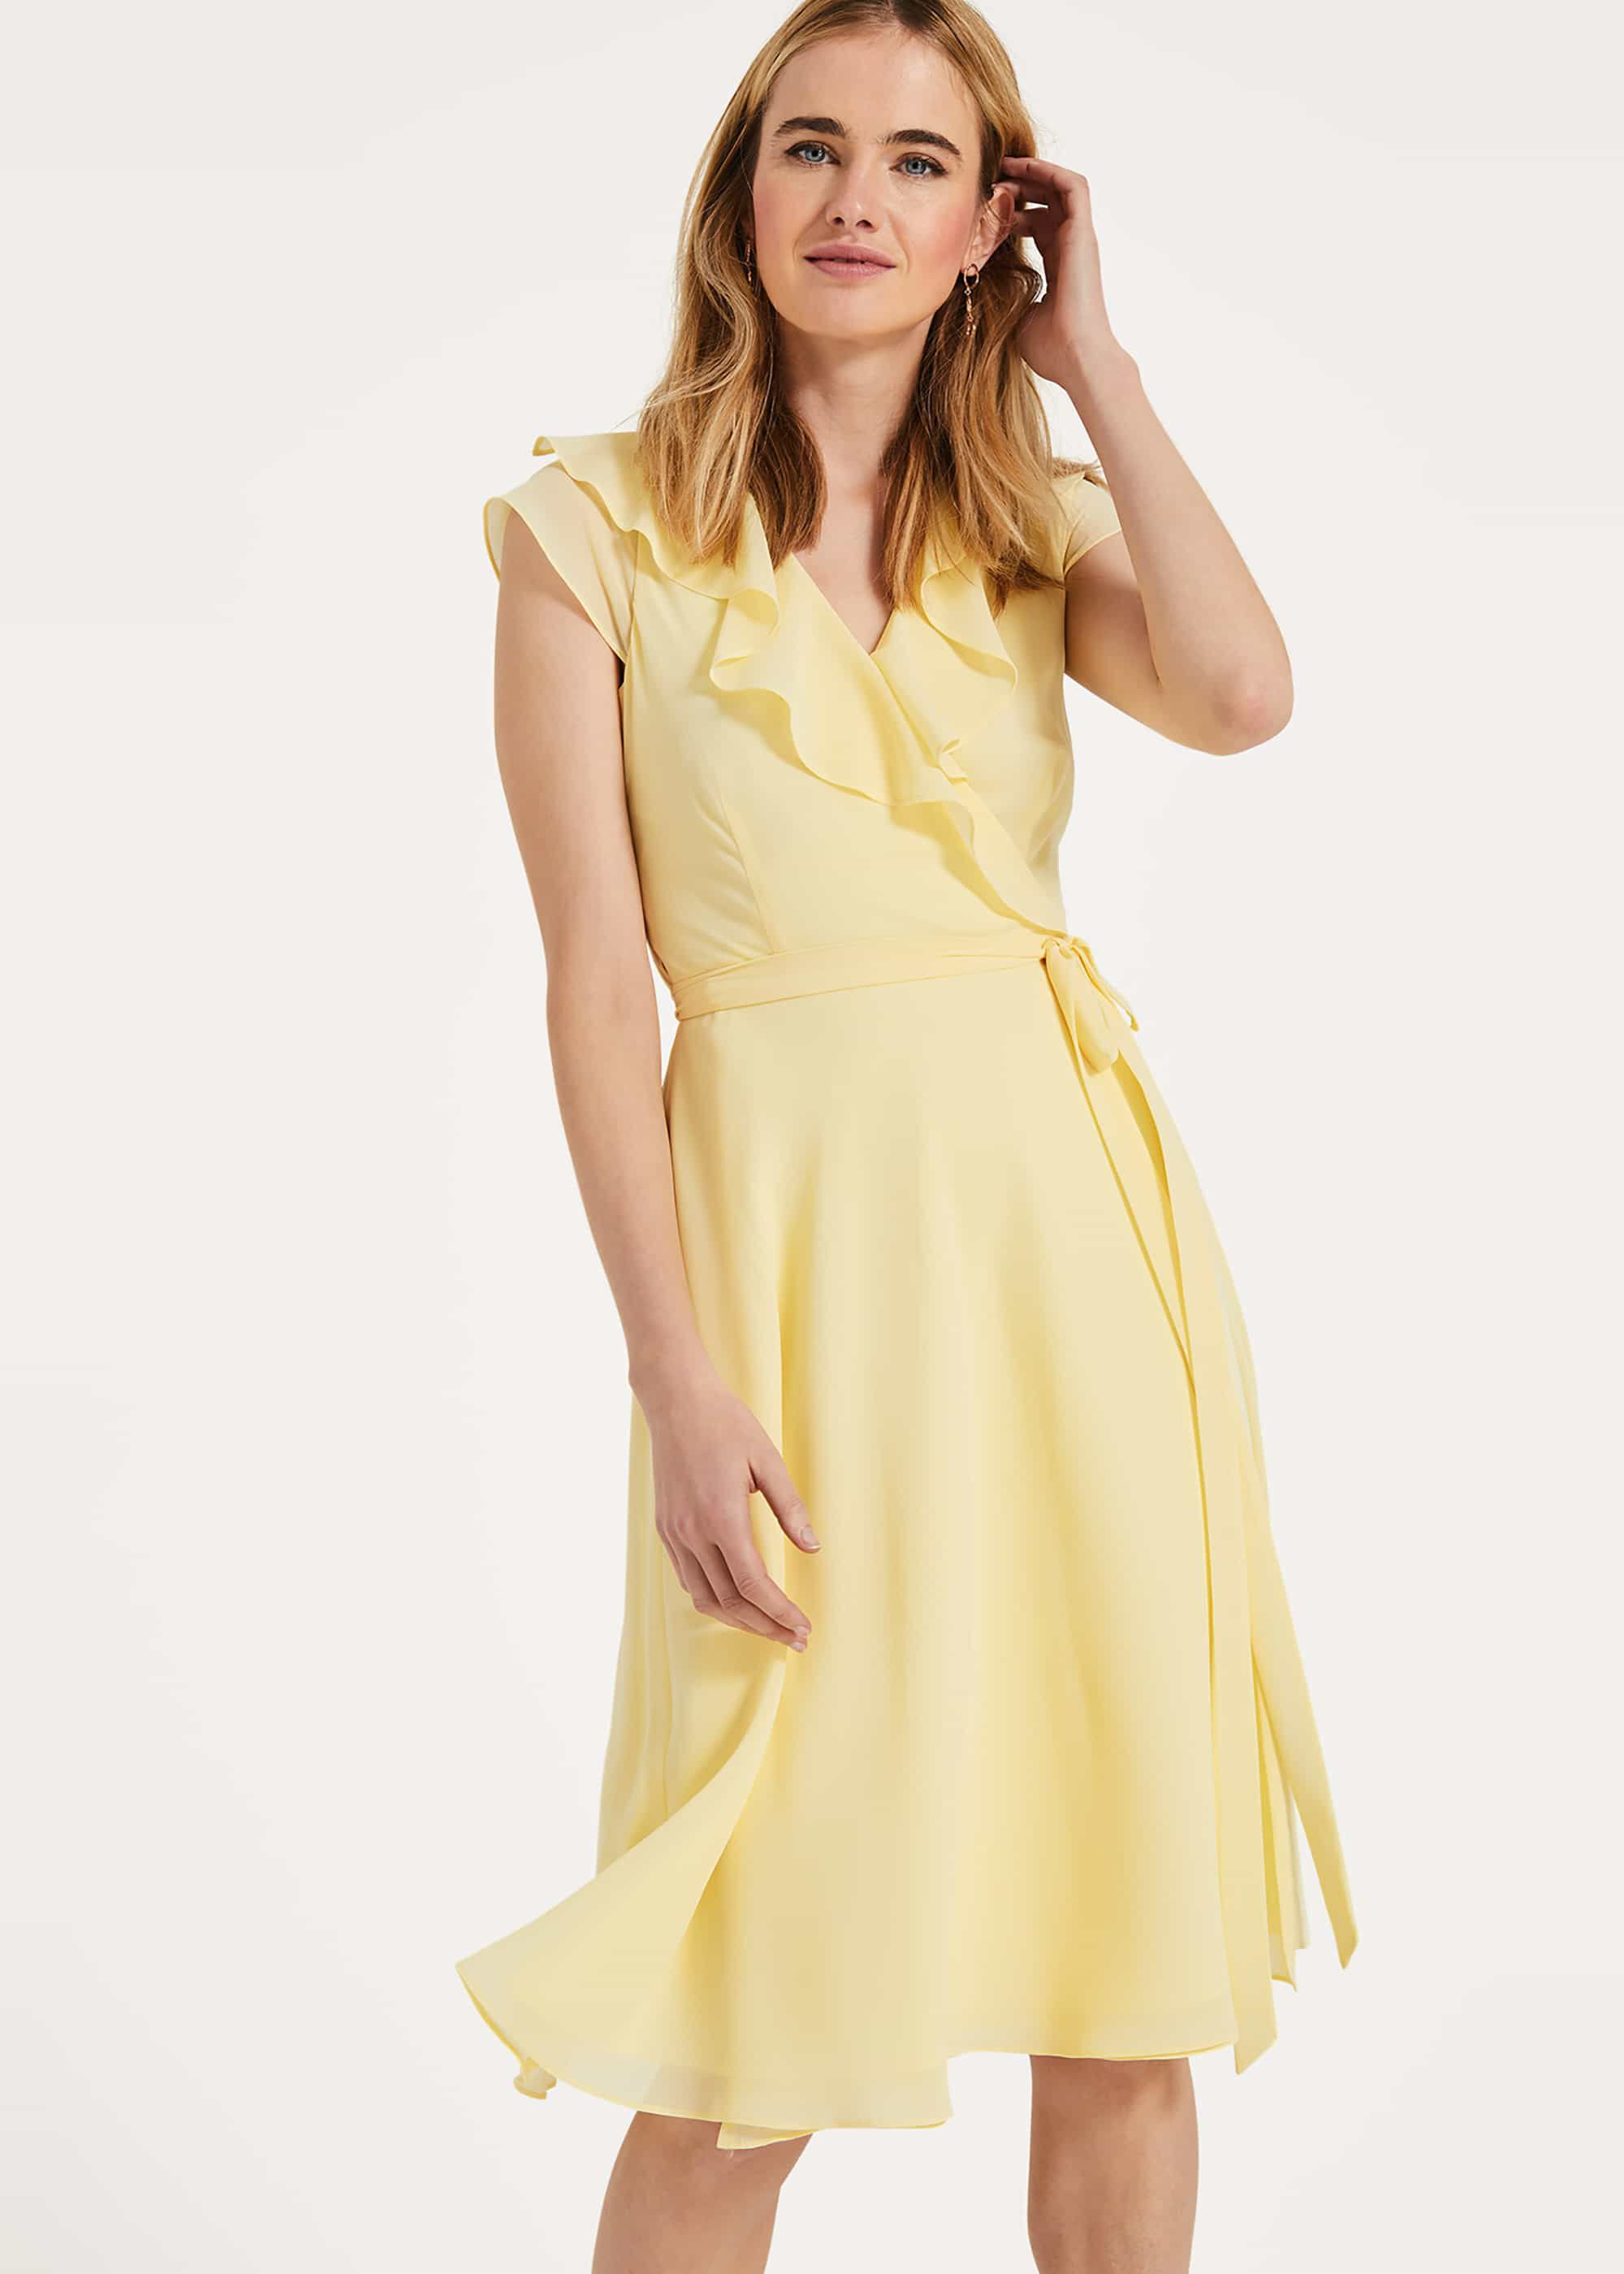 Phase Eight Allegra Wrap Dress, Yellow, Fit & Flare, Occasion Dress